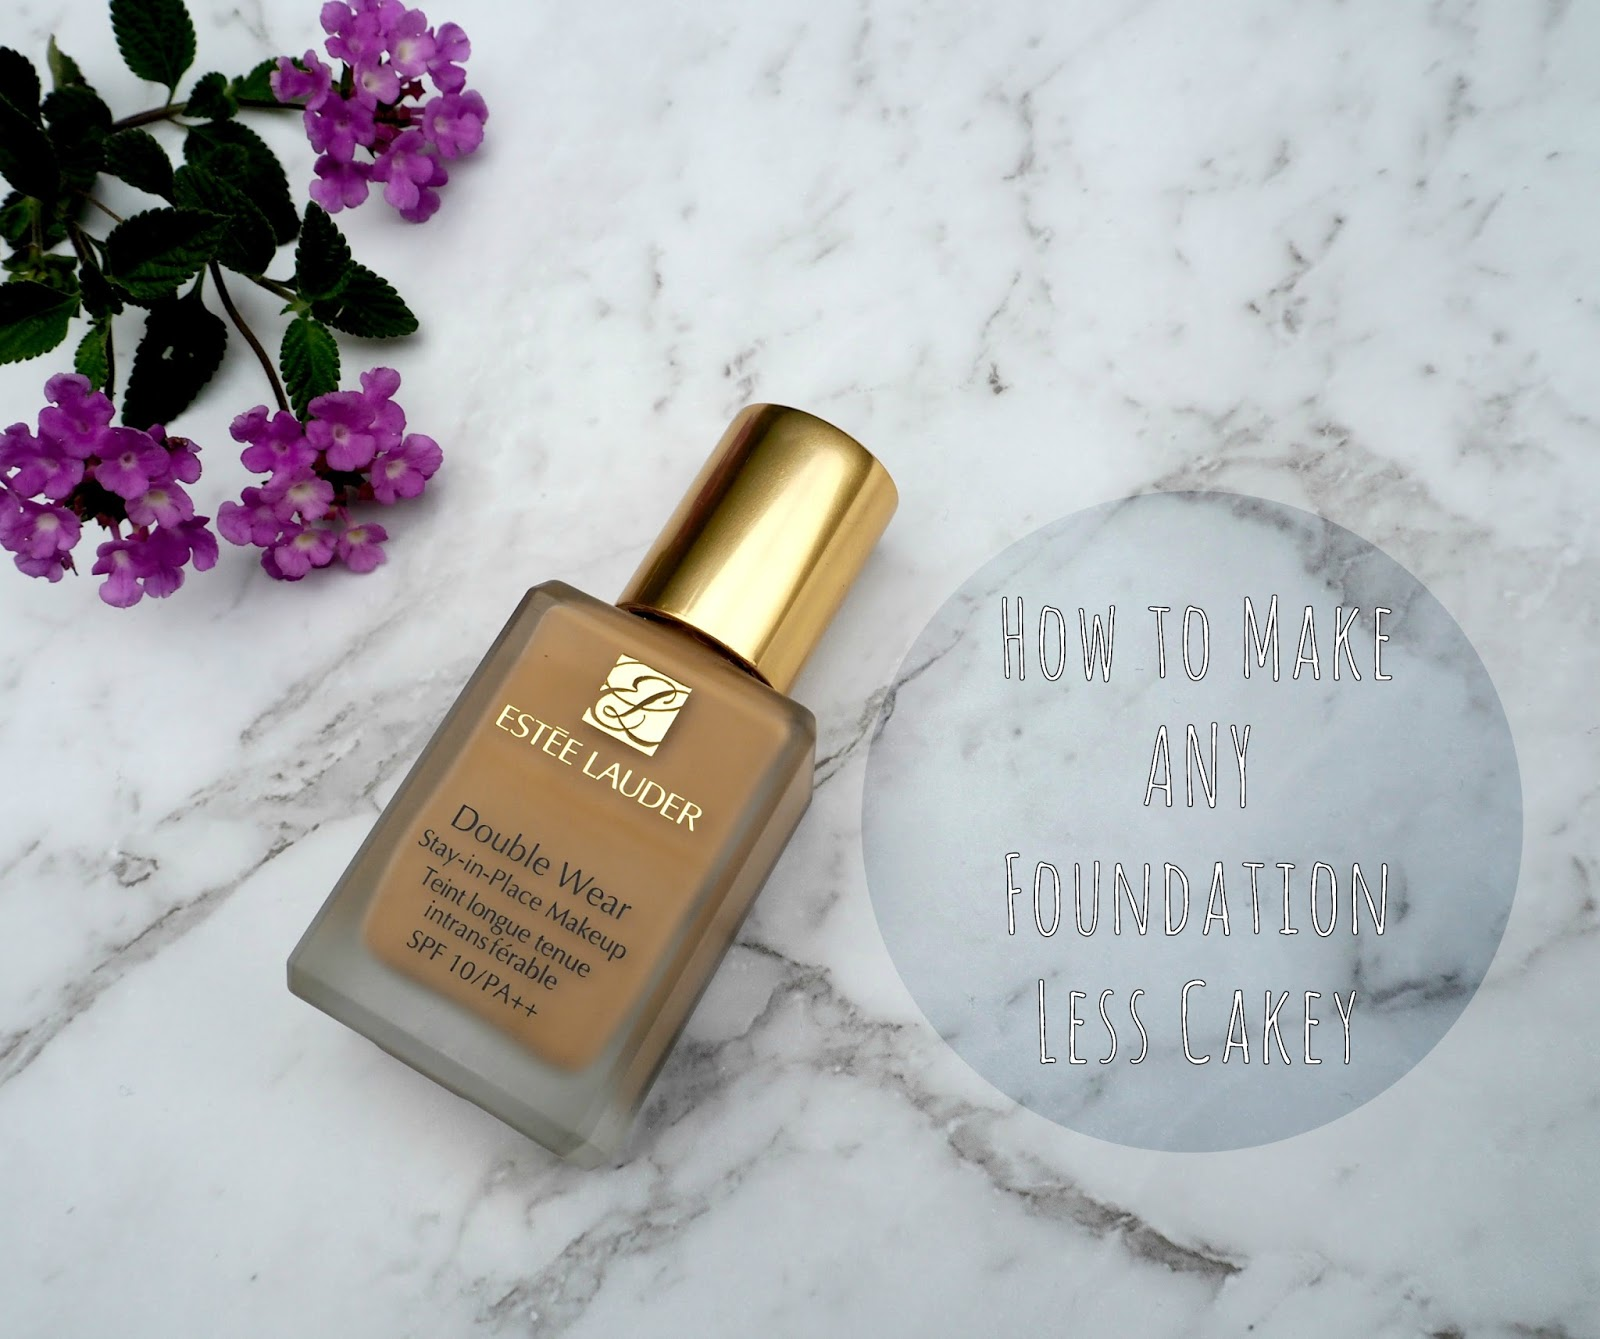 how to make any foundation less cakey: poshmakeupnstuff.blogspot.com